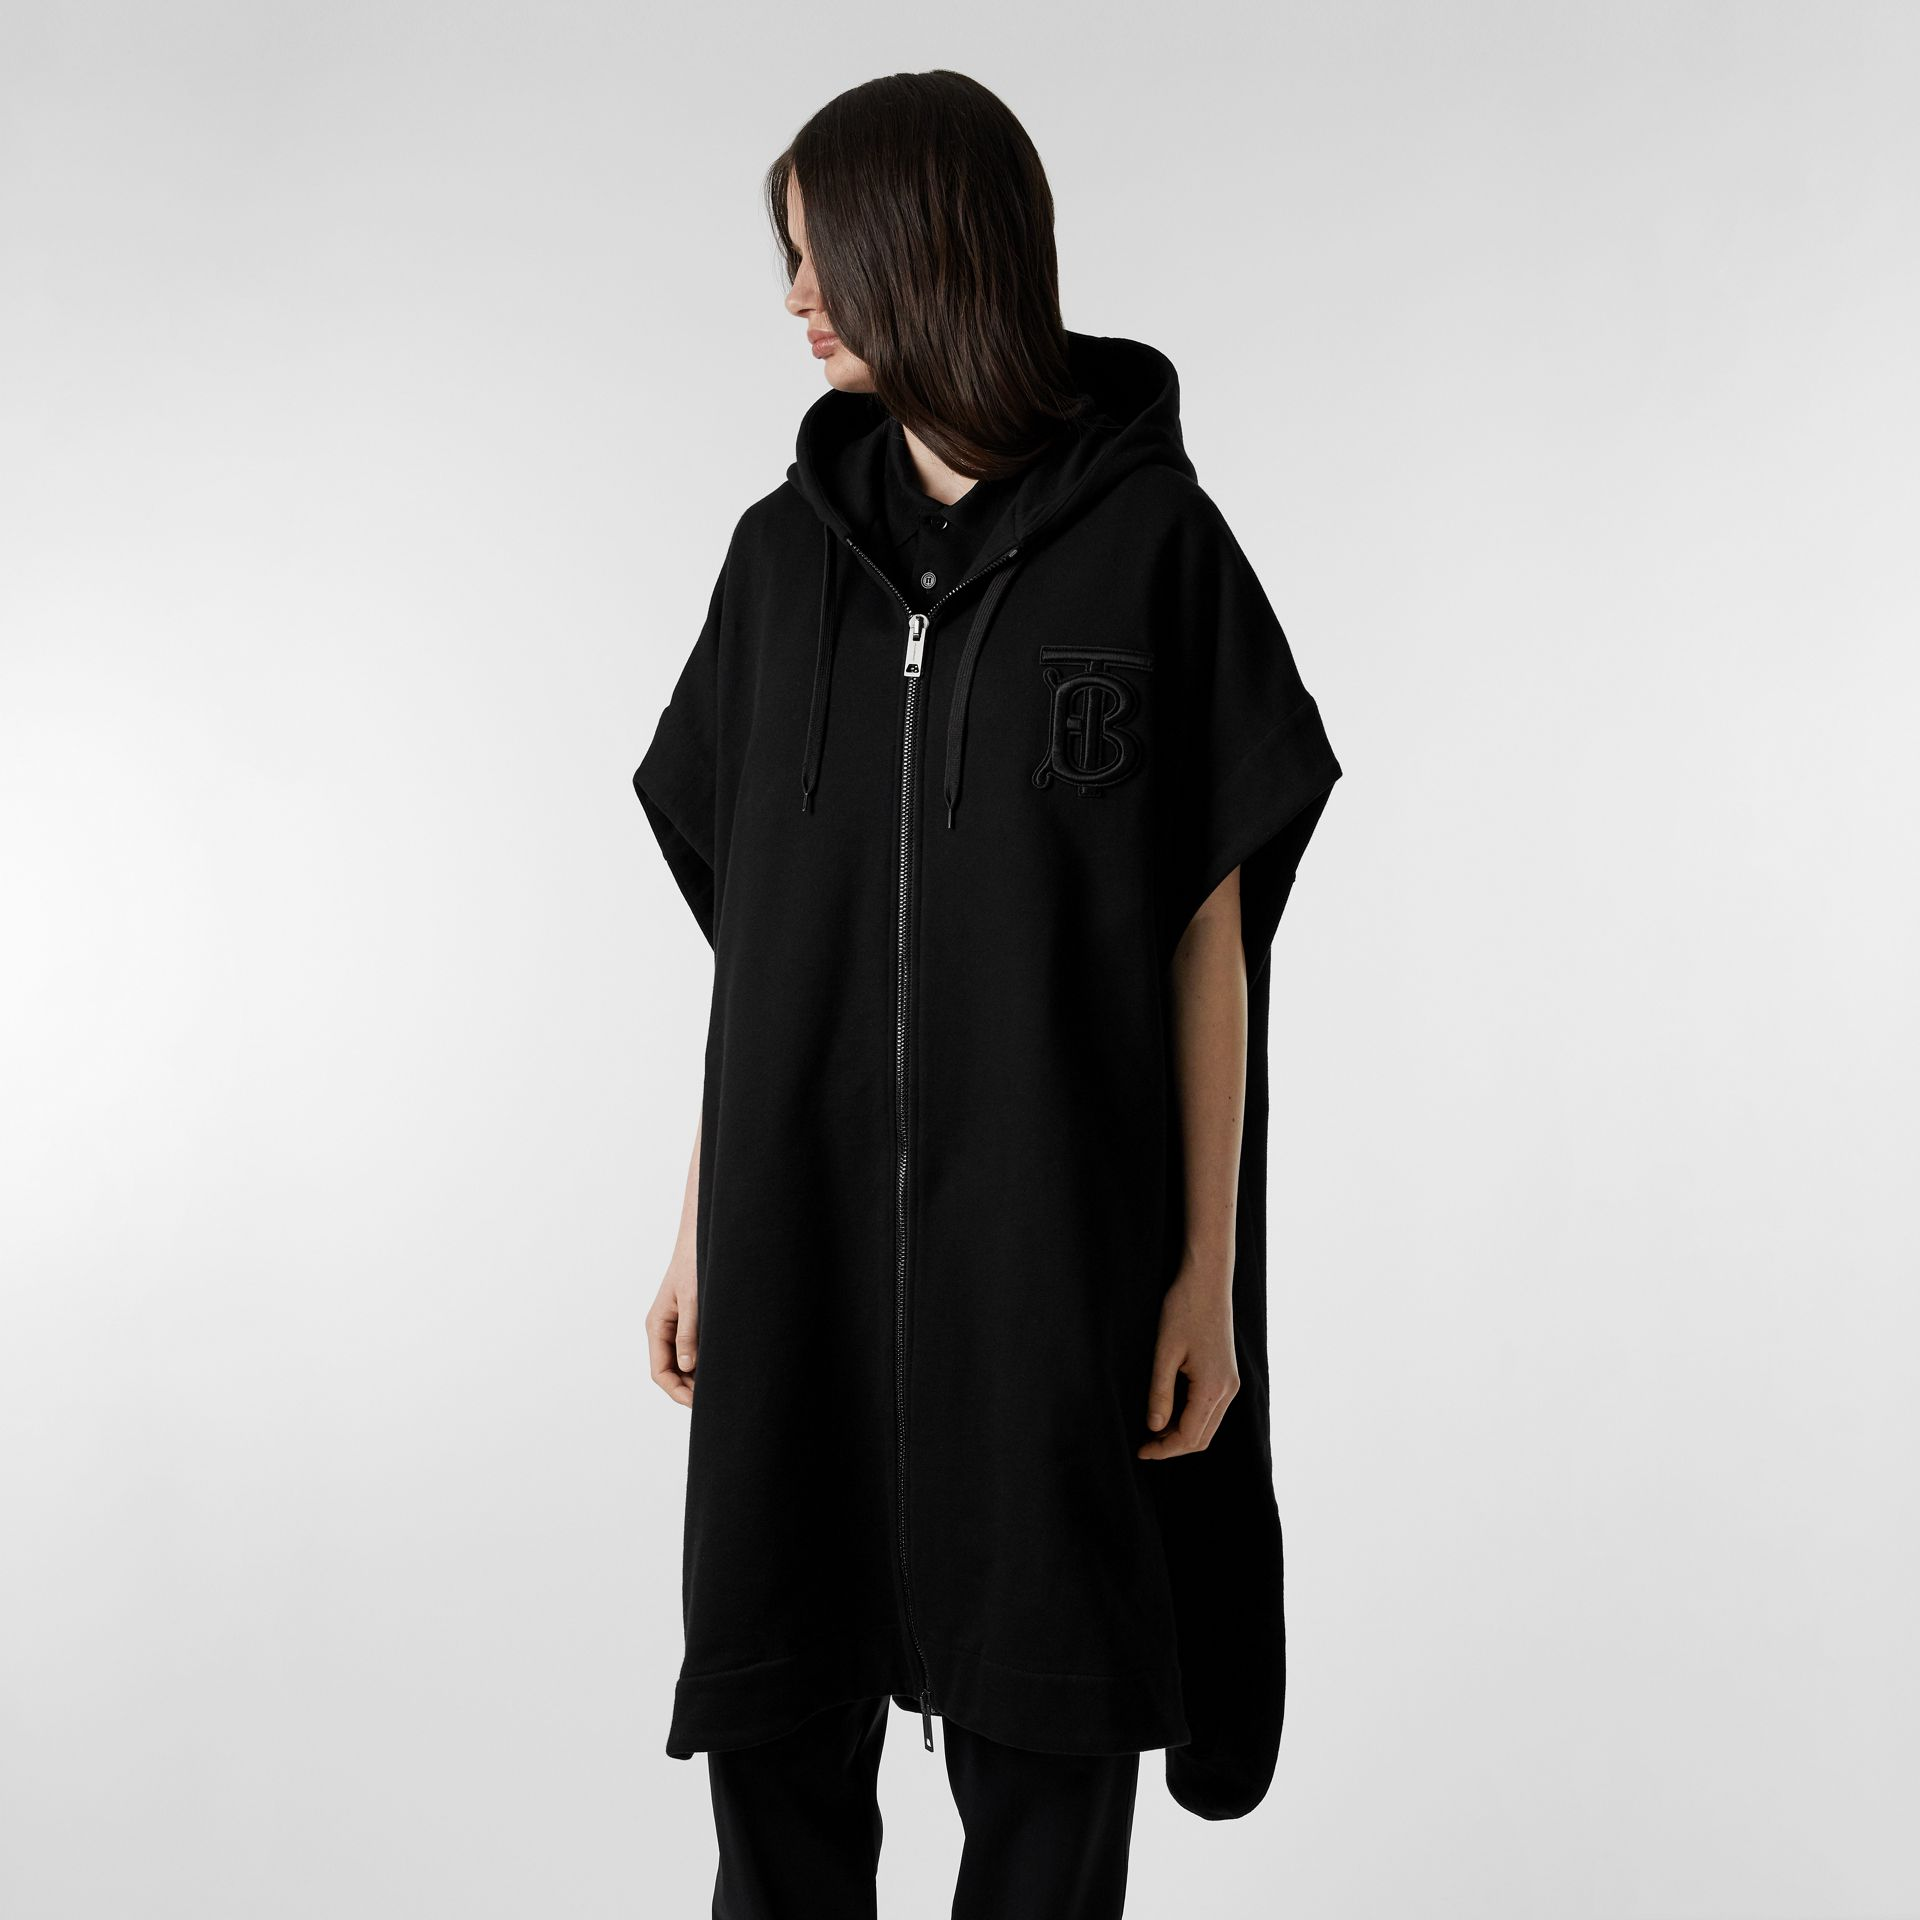 Monogram Motif Cotton Oversized Hooded Poncho in Black | Burberry - gallery image 5